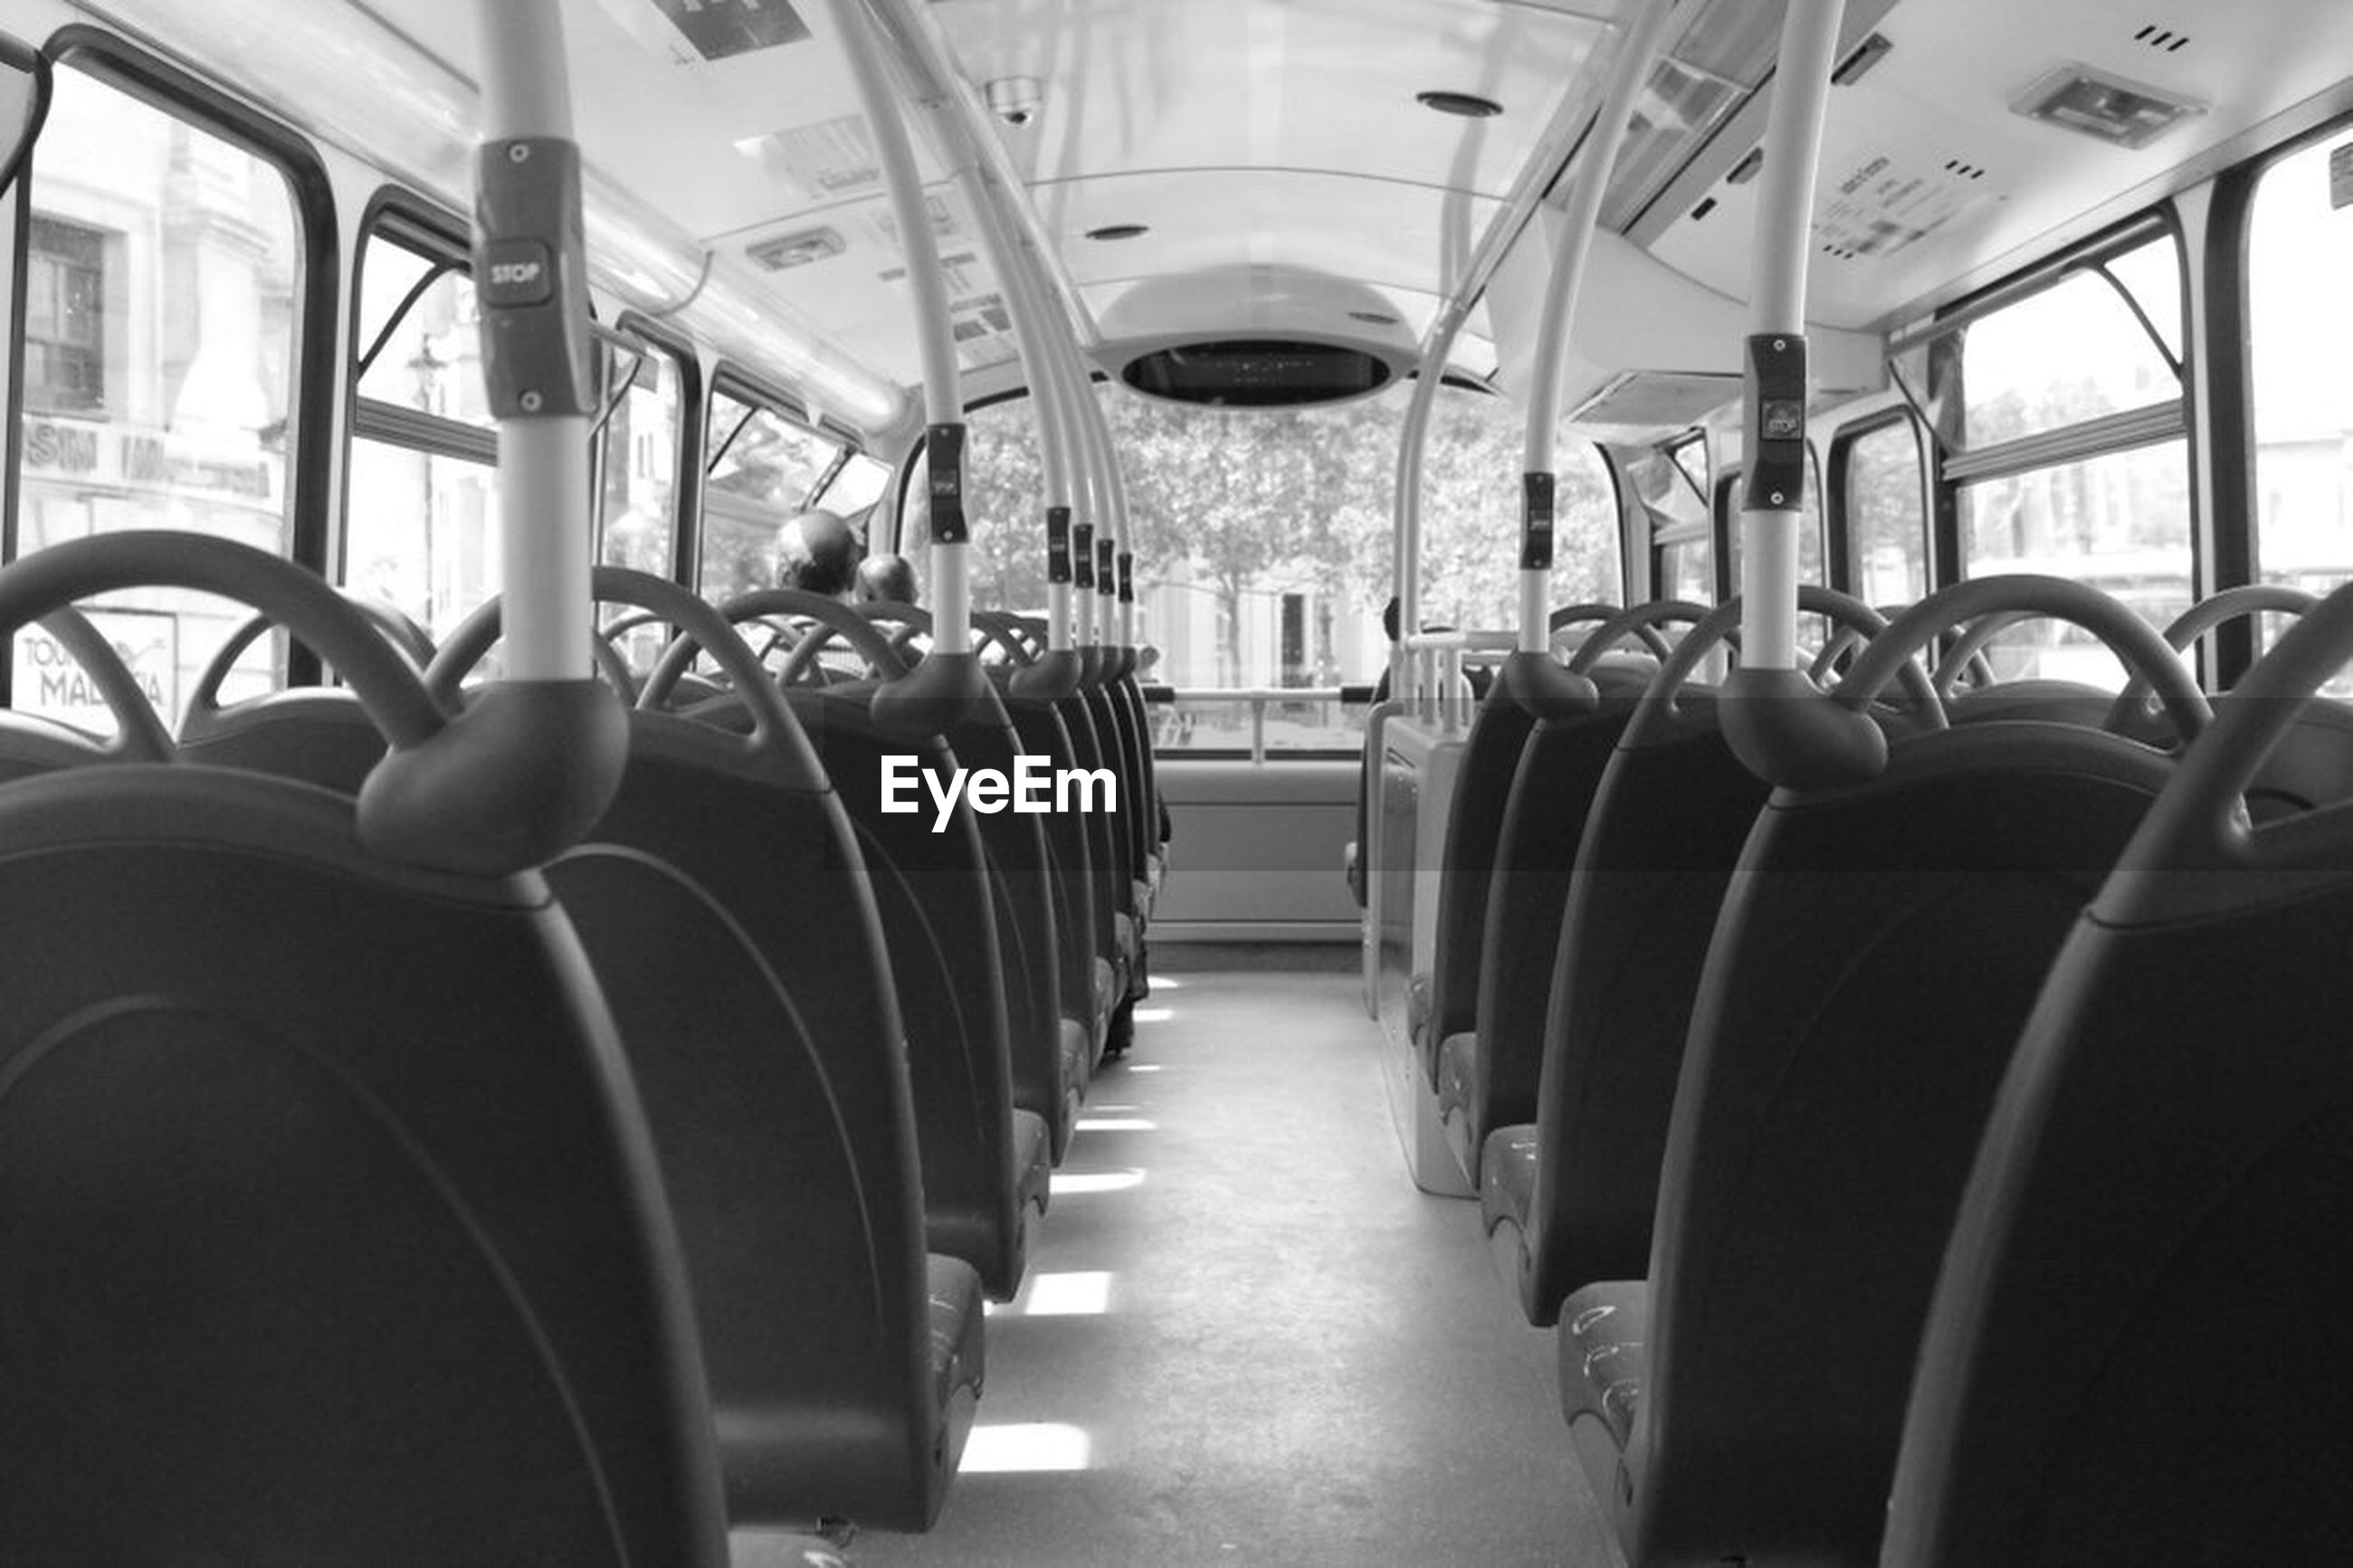 mode of transport, transportation, vehicle seat, vehicle interior, seat, window, bus, travel, public transportation, public transport, absence, in a row, rear view, journey, passenger, sitting, close-up, empty, aisle, mid distance, traveling, repetition, diminishing perspective, transport, long, narrow